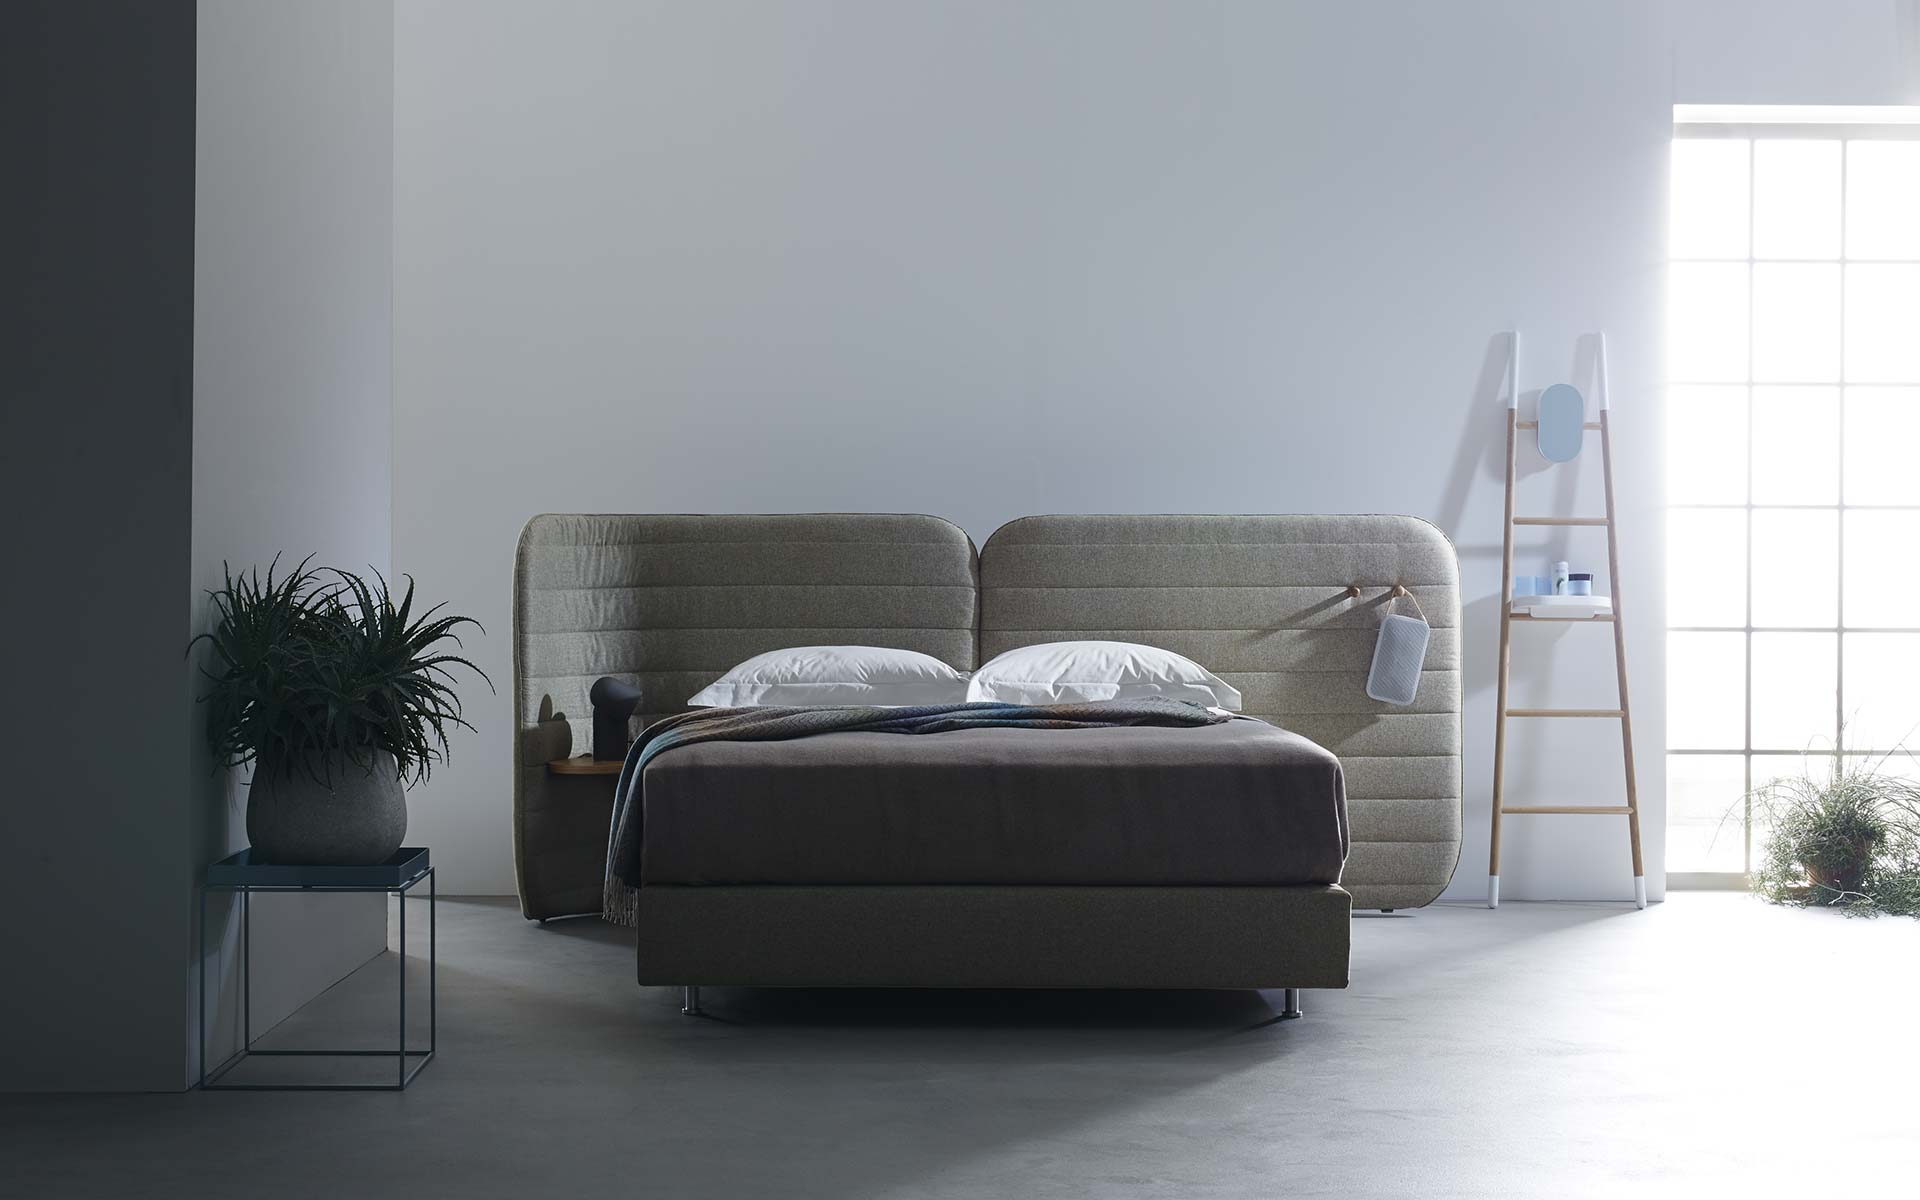 exklusive boxspring betten in hannover bei hans g bock. Black Bedroom Furniture Sets. Home Design Ideas